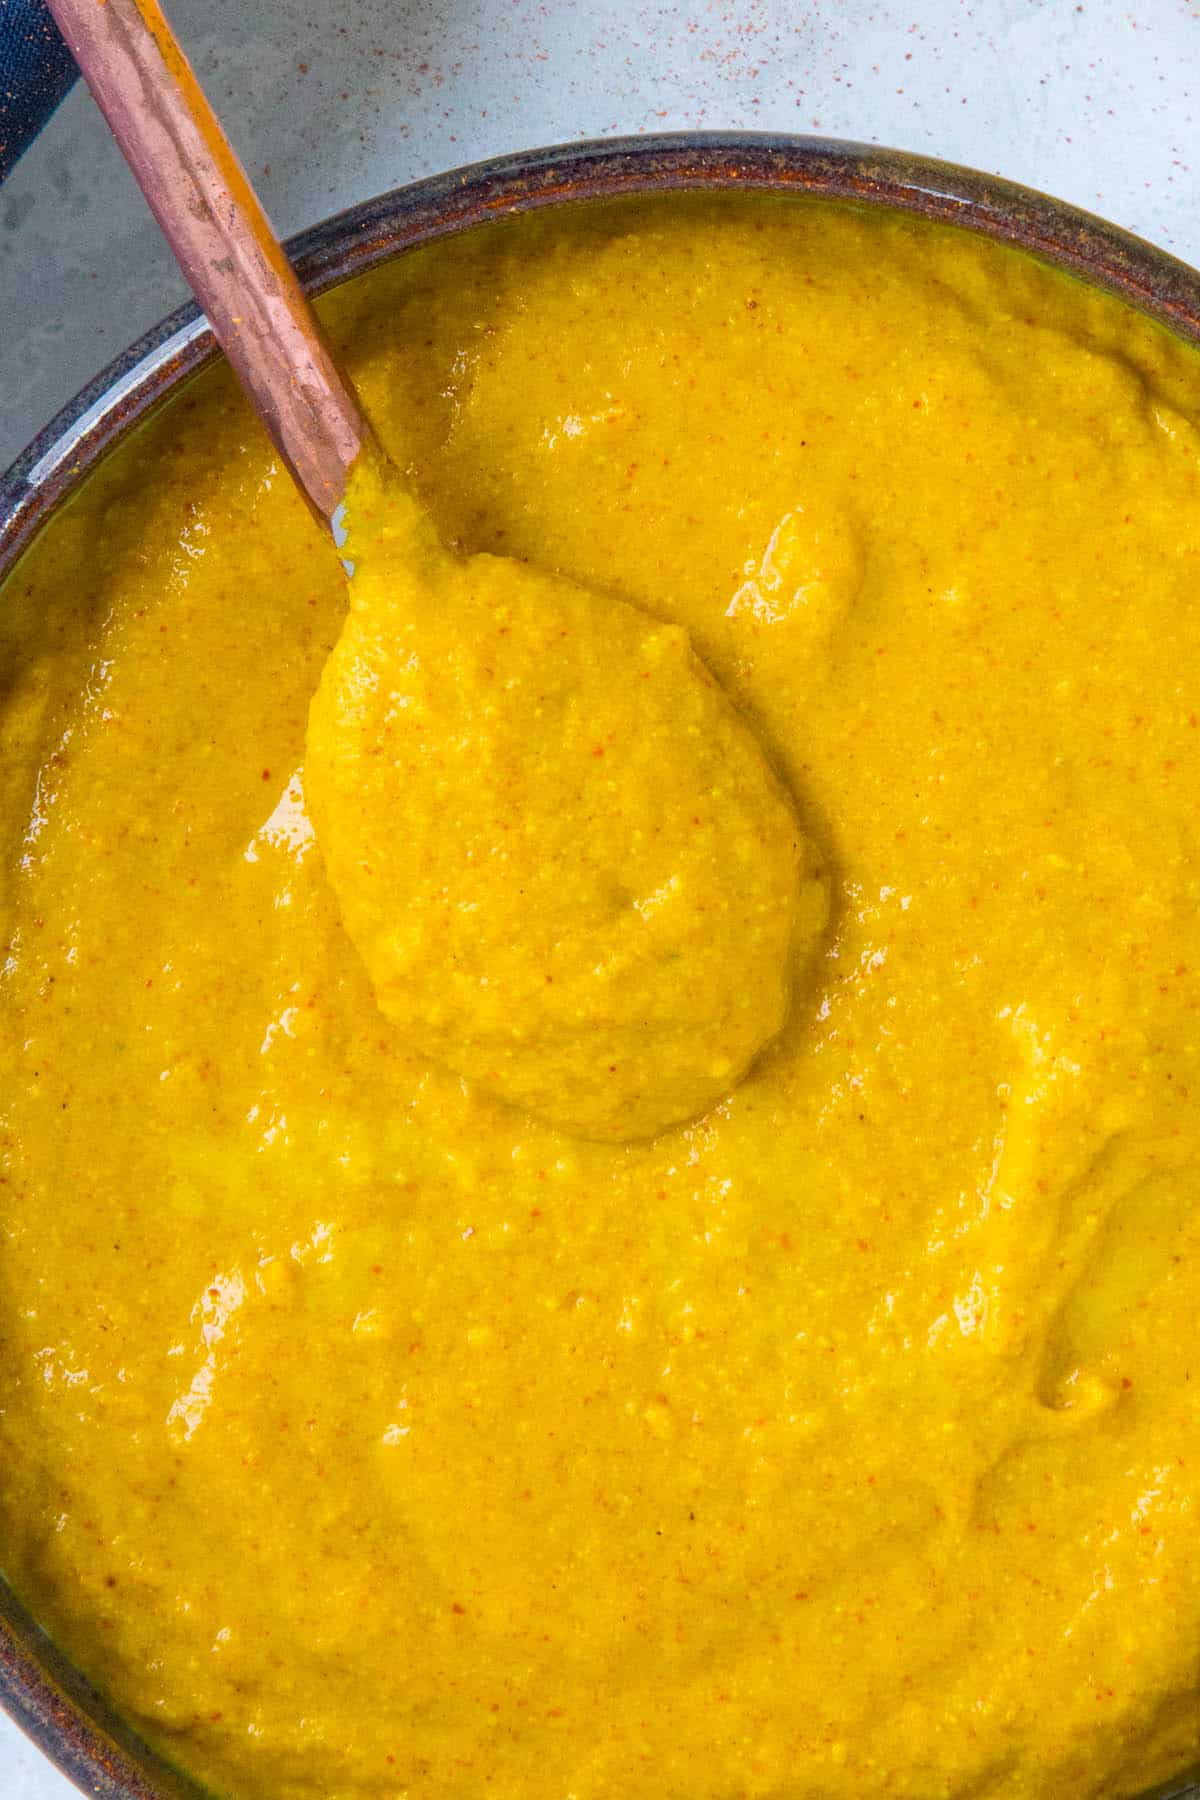 Homemade Yellow Mustard ready to serve